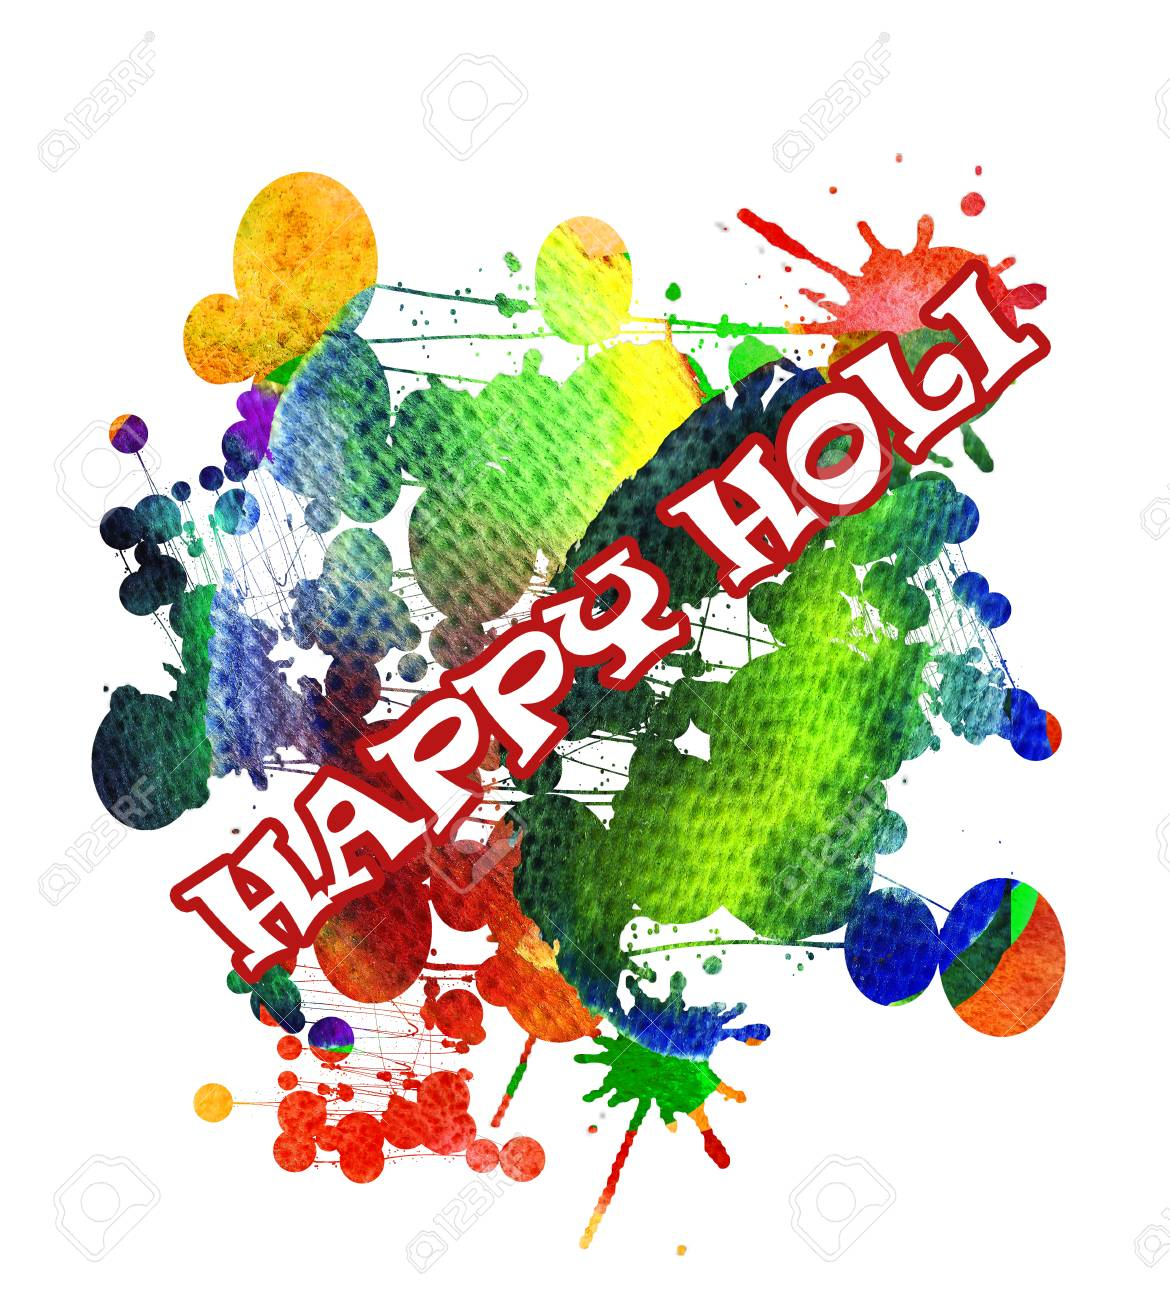 Happy holi greeting card colorful watercolor background stock happy holi greeting card colorful watercolor background stock photo 72855967 m4hsunfo